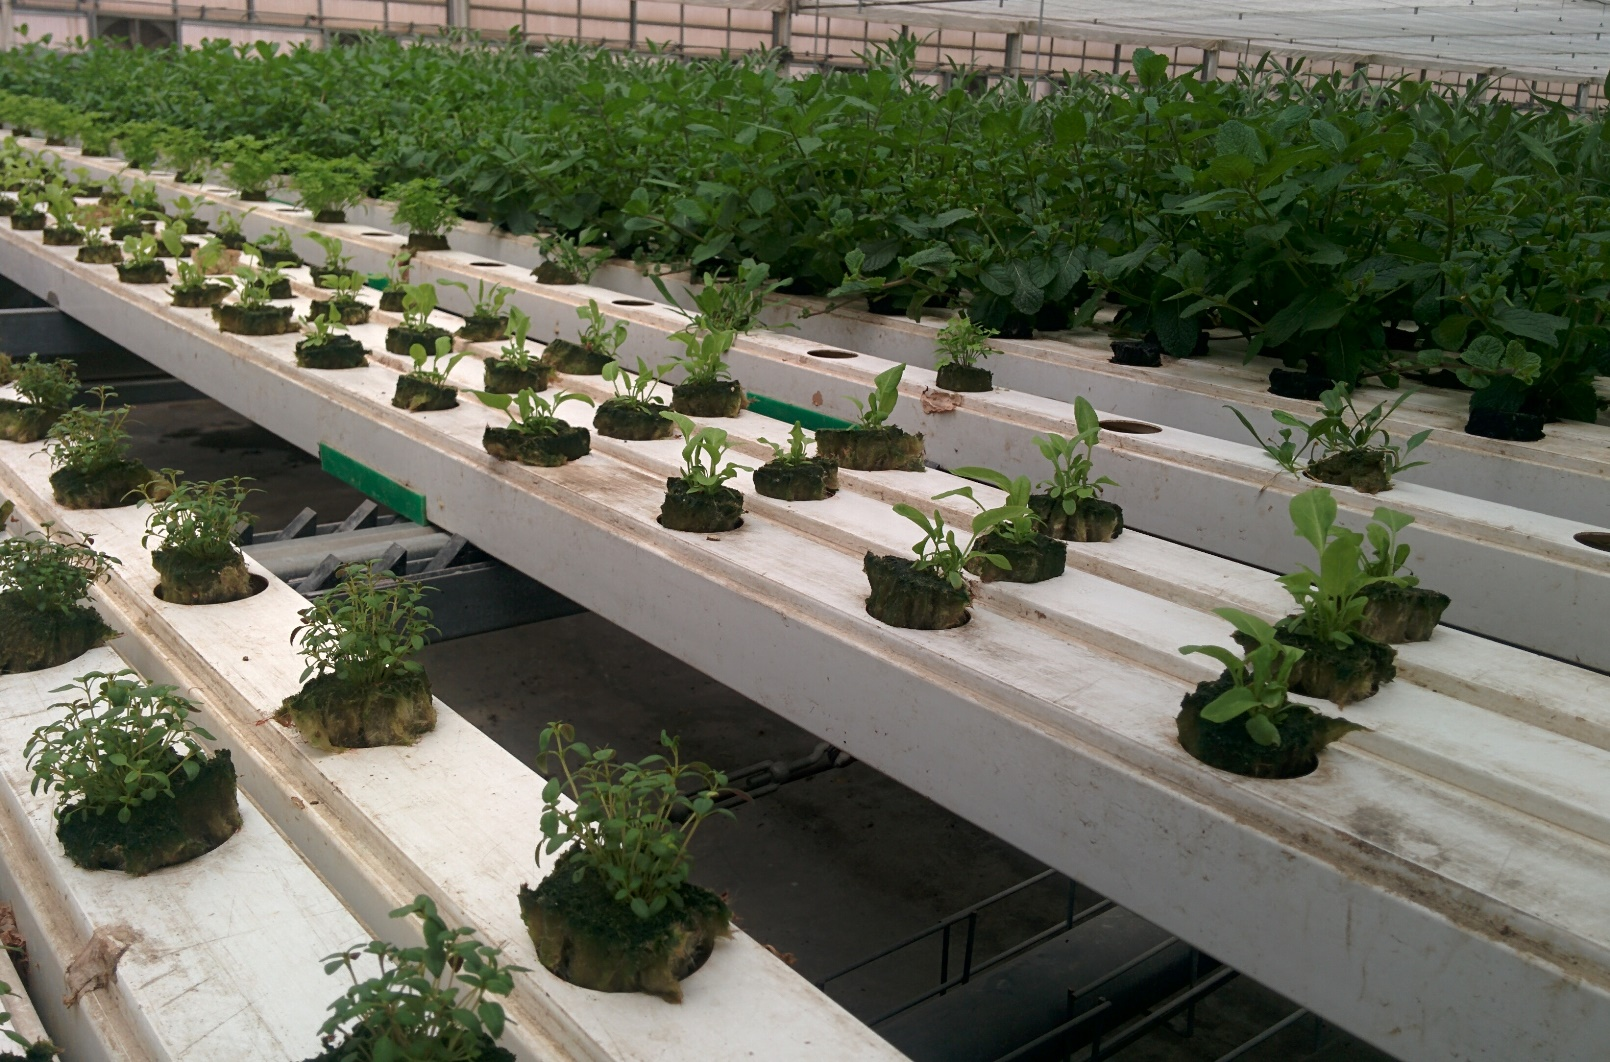 Aleinu's greens are raised in a unique system of troughs that automatically move farther apart as the leaves grow. Photo by Abigail Klein Leichman